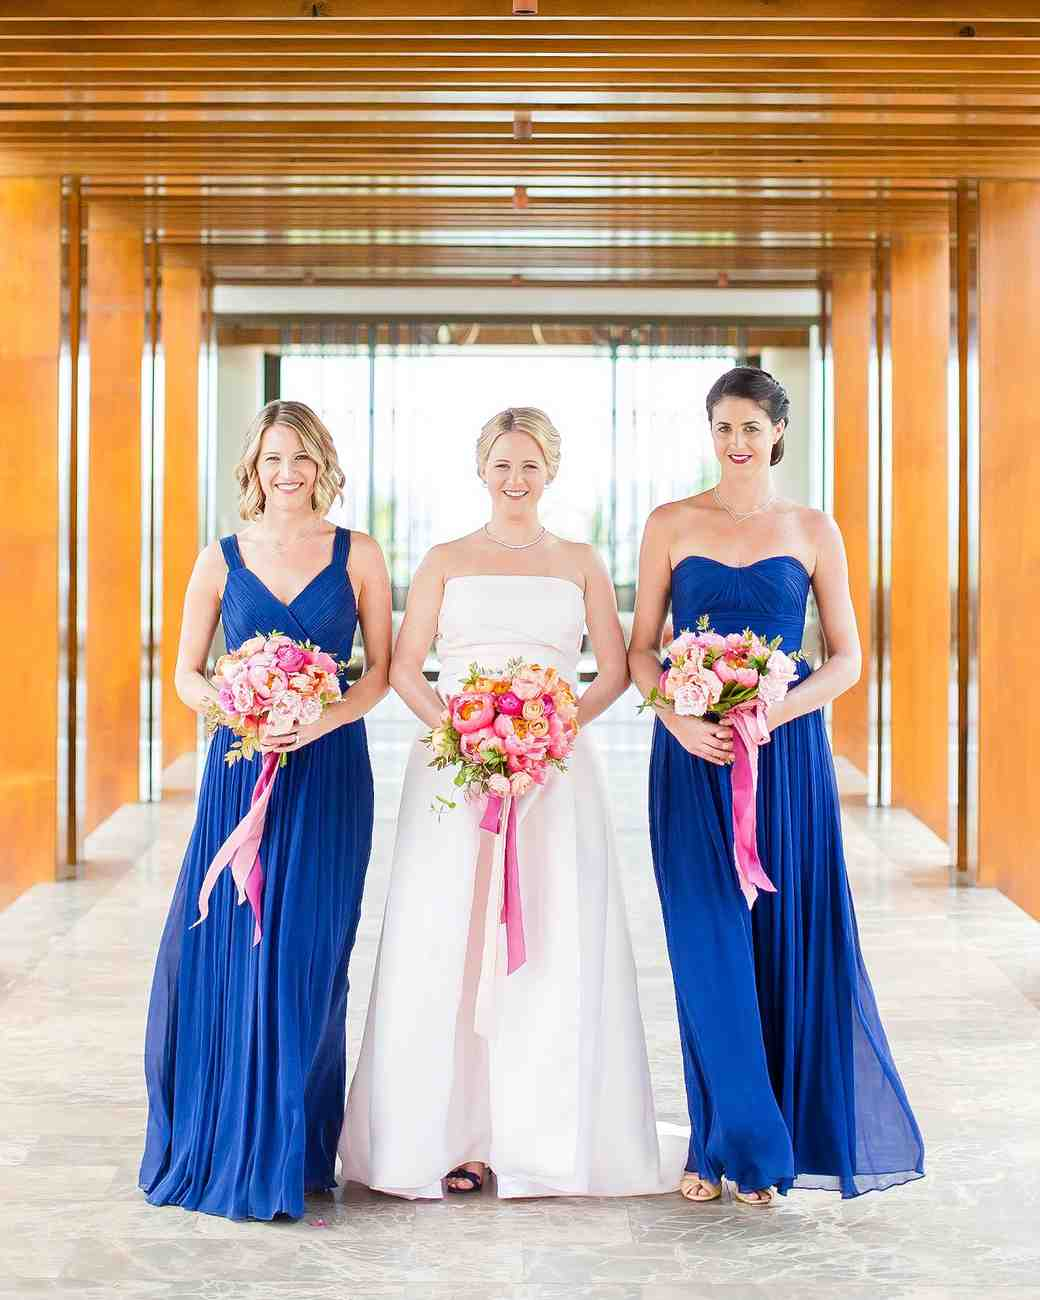 christen-tim-wedding-bridesmaids-21380.jpg-6143924-0816.jpg